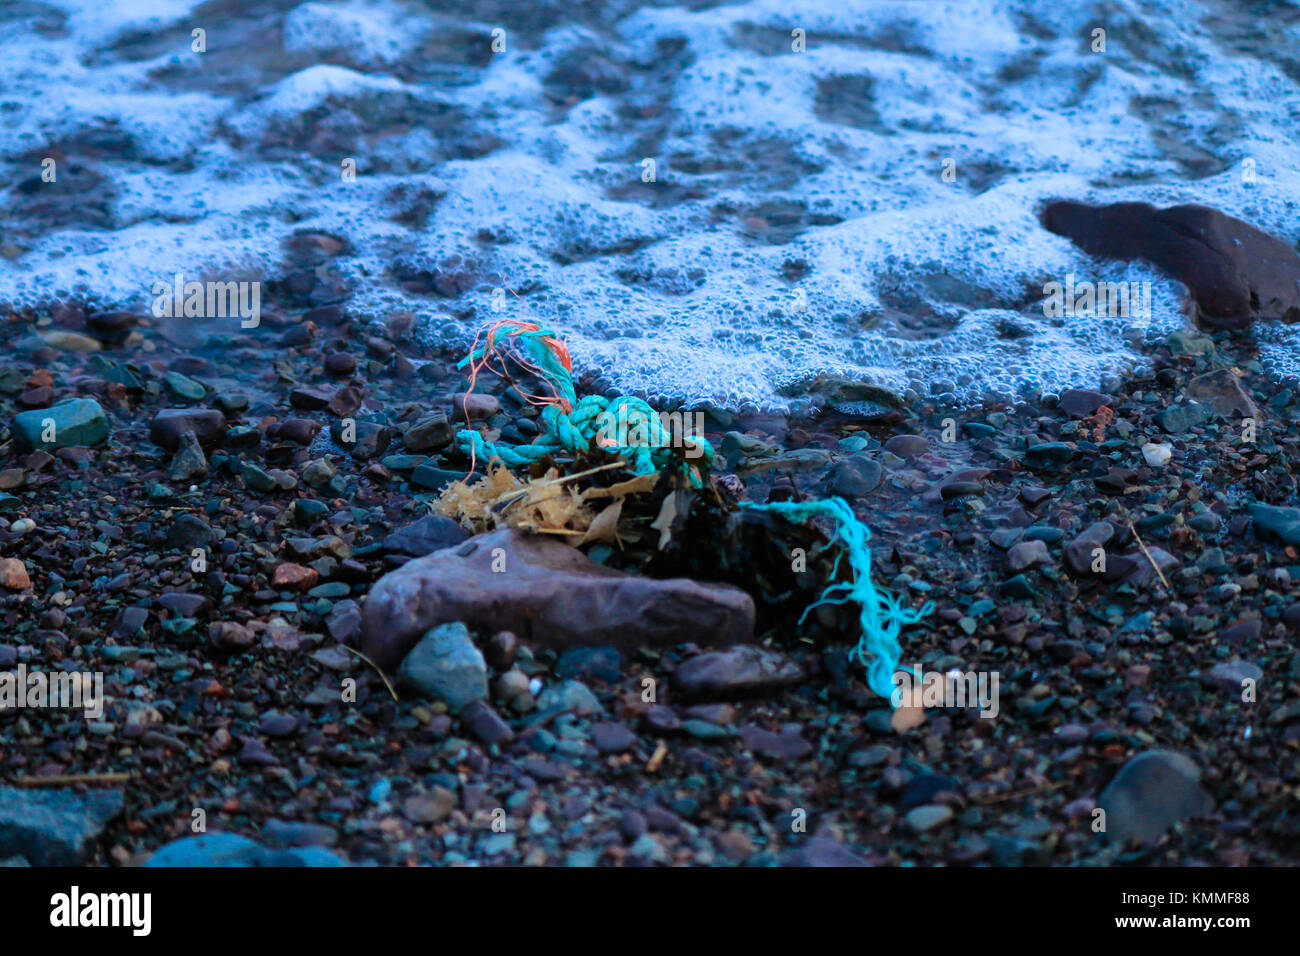 Washed up rope,where did it come from? - Stock Image